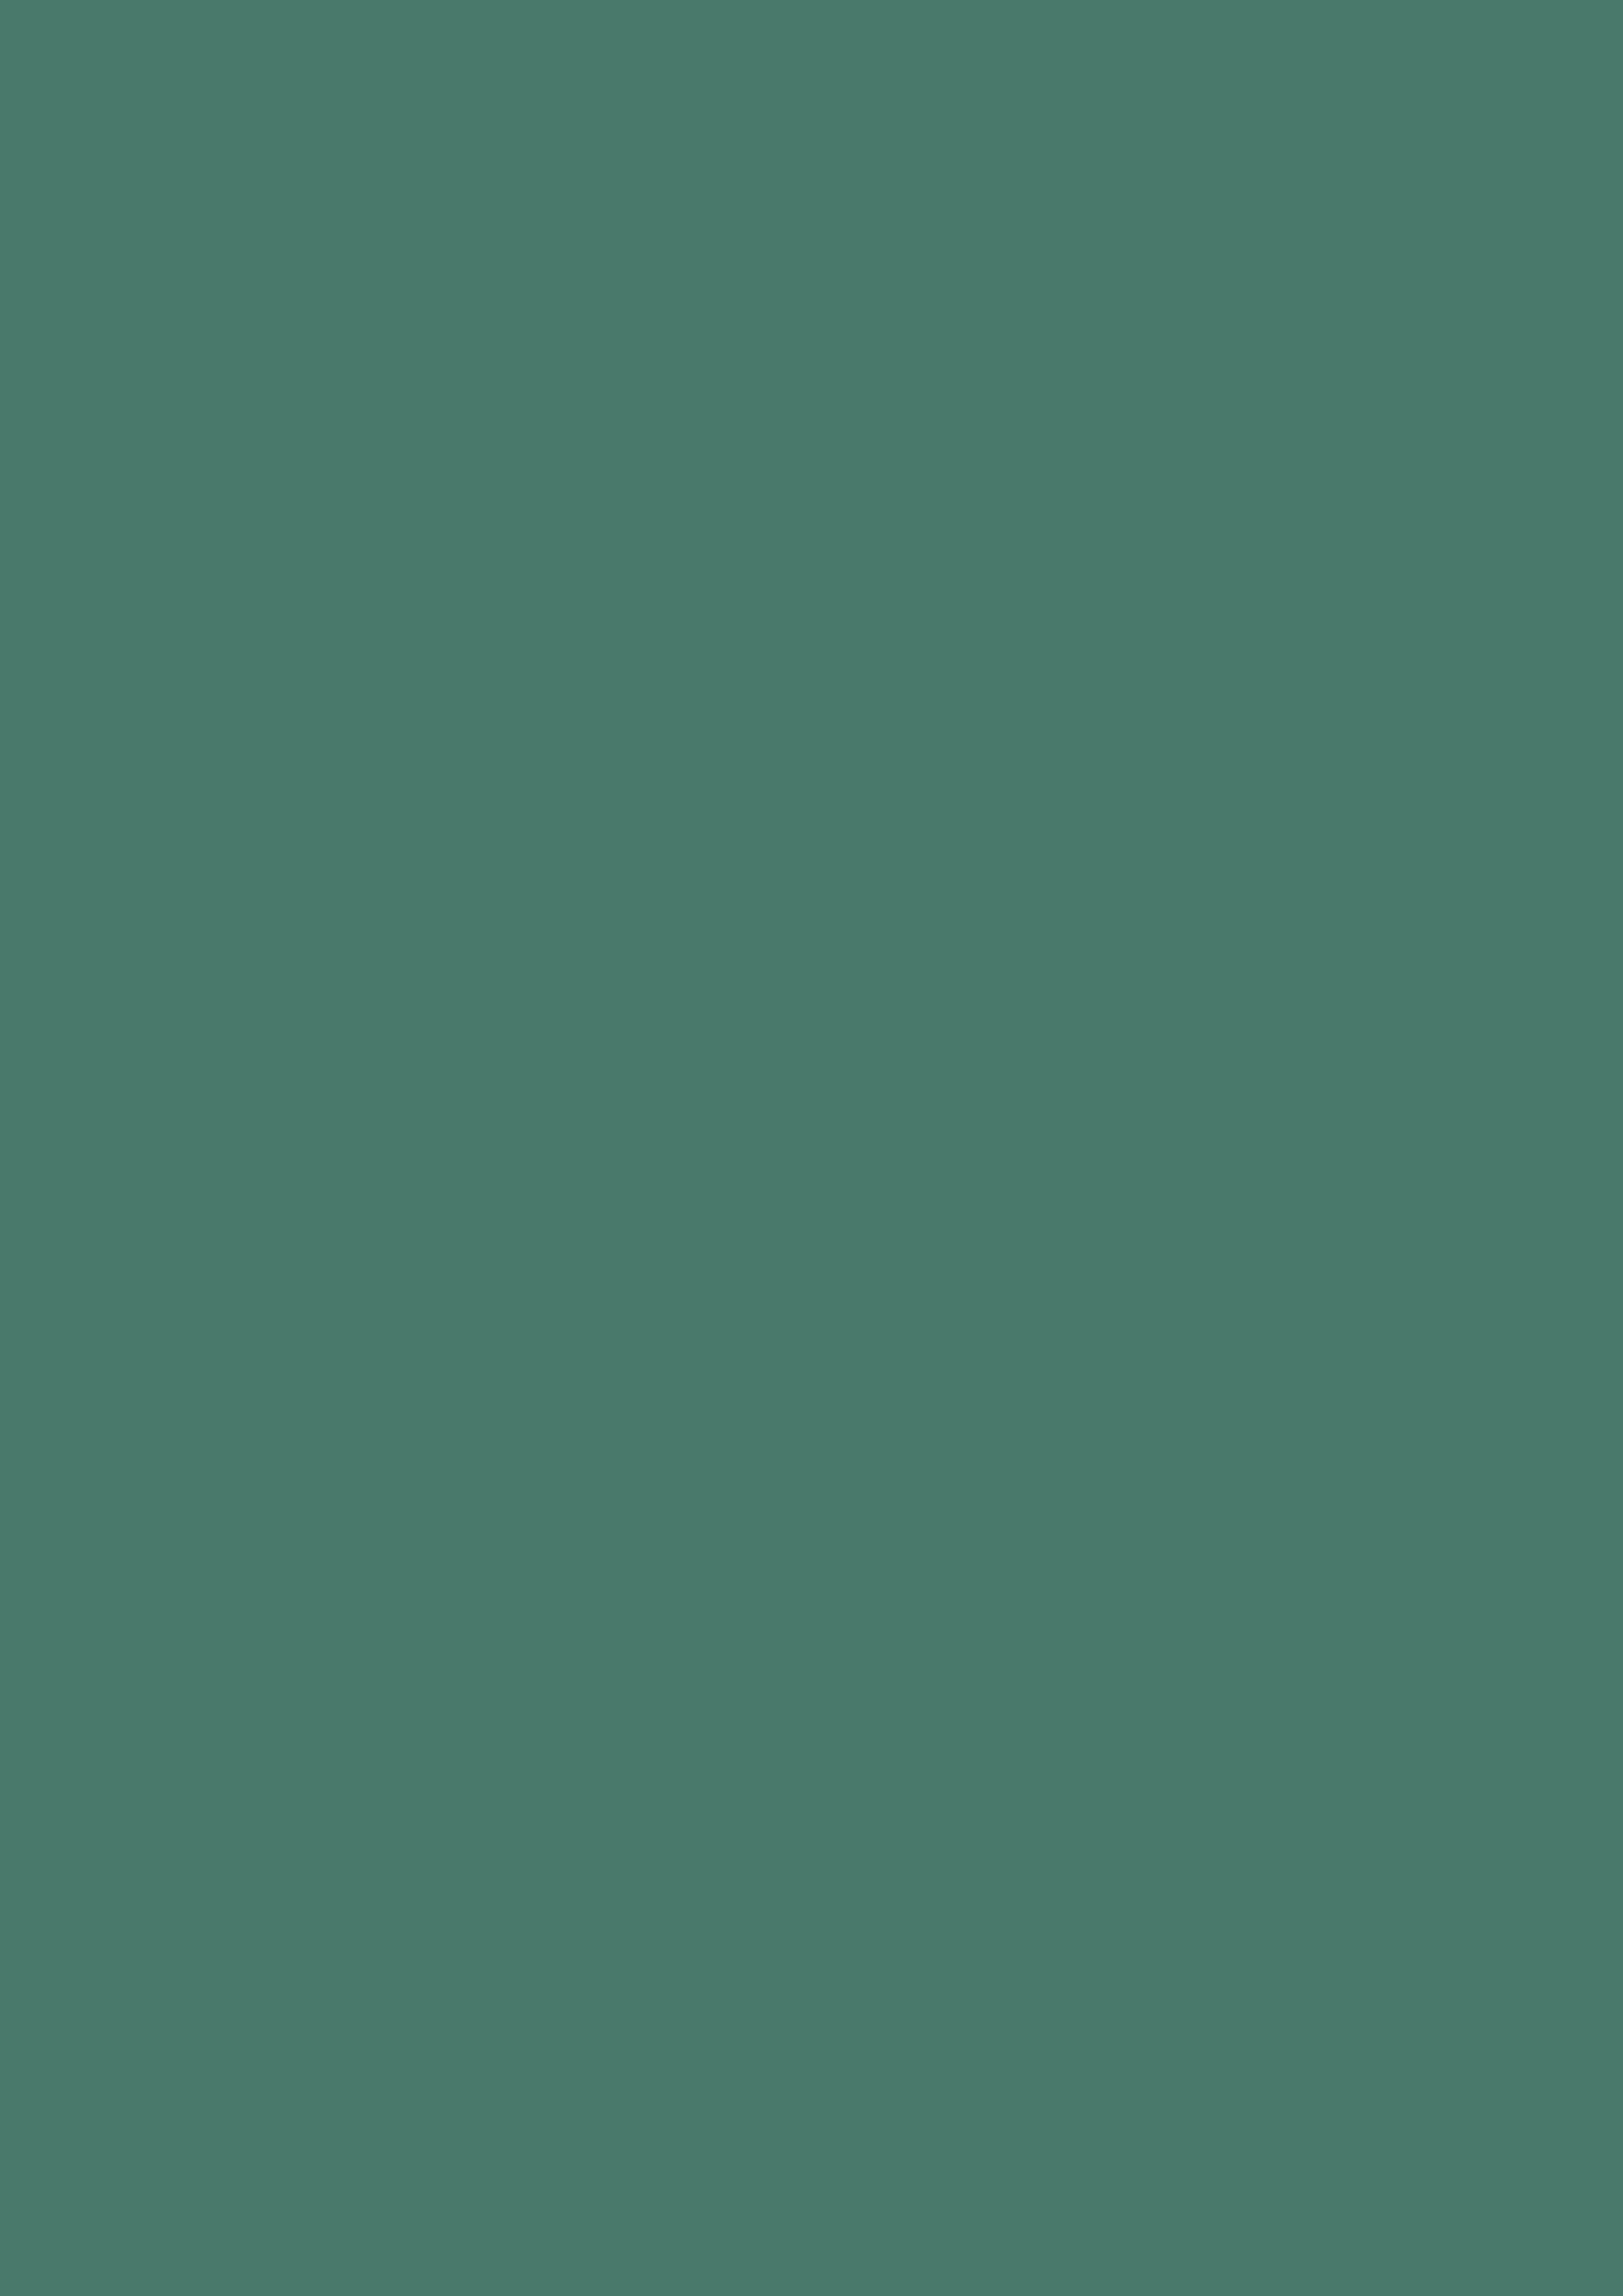 2480x3508 Hookers Green Solid Color Background